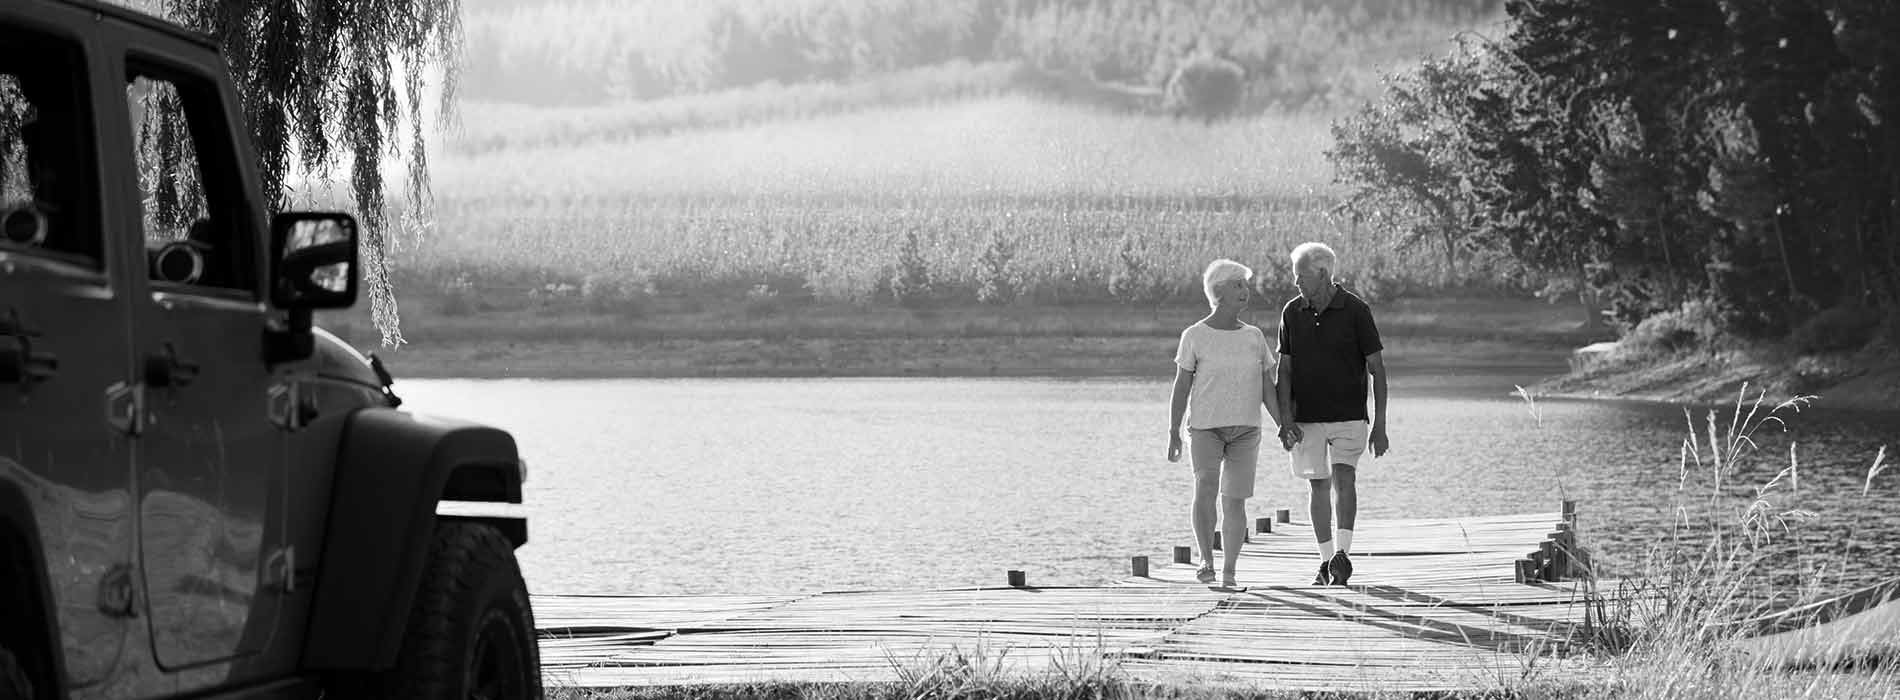 senior couple walking  on a lake dock towards their jeep